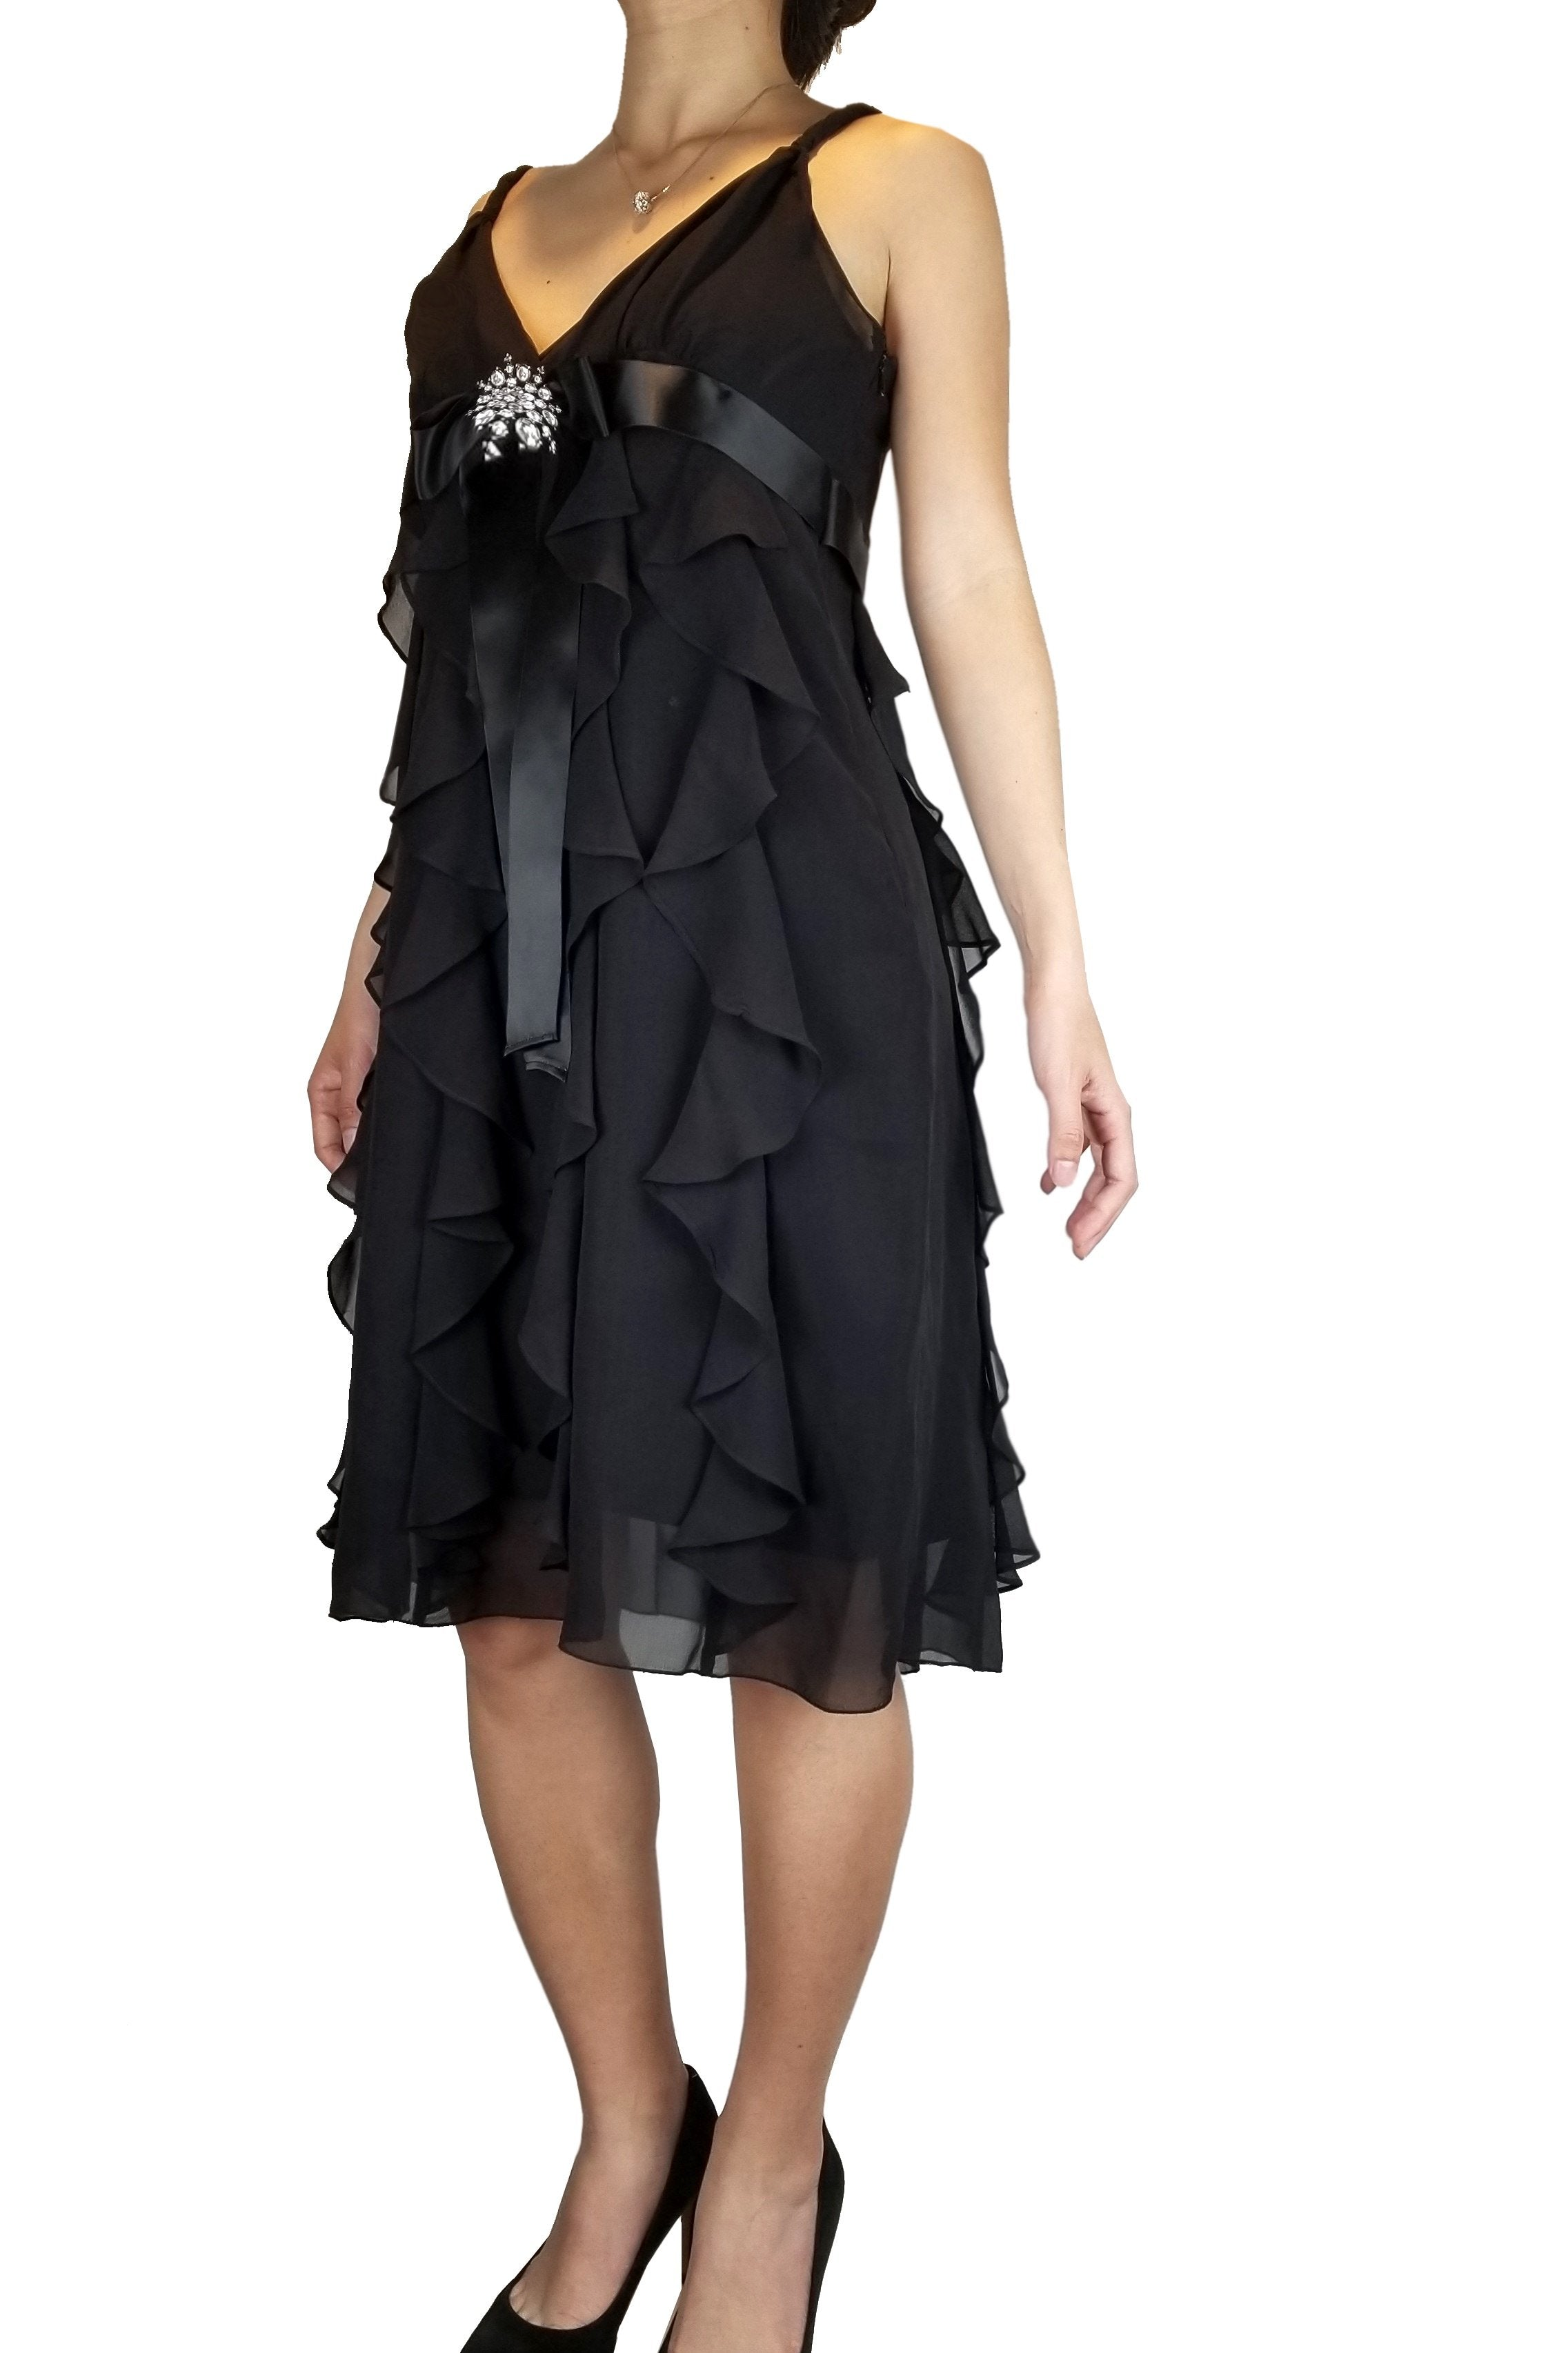 BCBGMAXAZRIA Flowy Cocktail Dress with Front Crystal Tie, Look and feel your best in this flowy cocktail dress perfect. Its front crystal bow tie at the waist accentuates the positives of your figure in this., Black, 71% Cotton 27% Polyester 2% Spandex , dress, women's party black dress, women's black designer's formal dress, black prom dress, fashion, black dress, featured